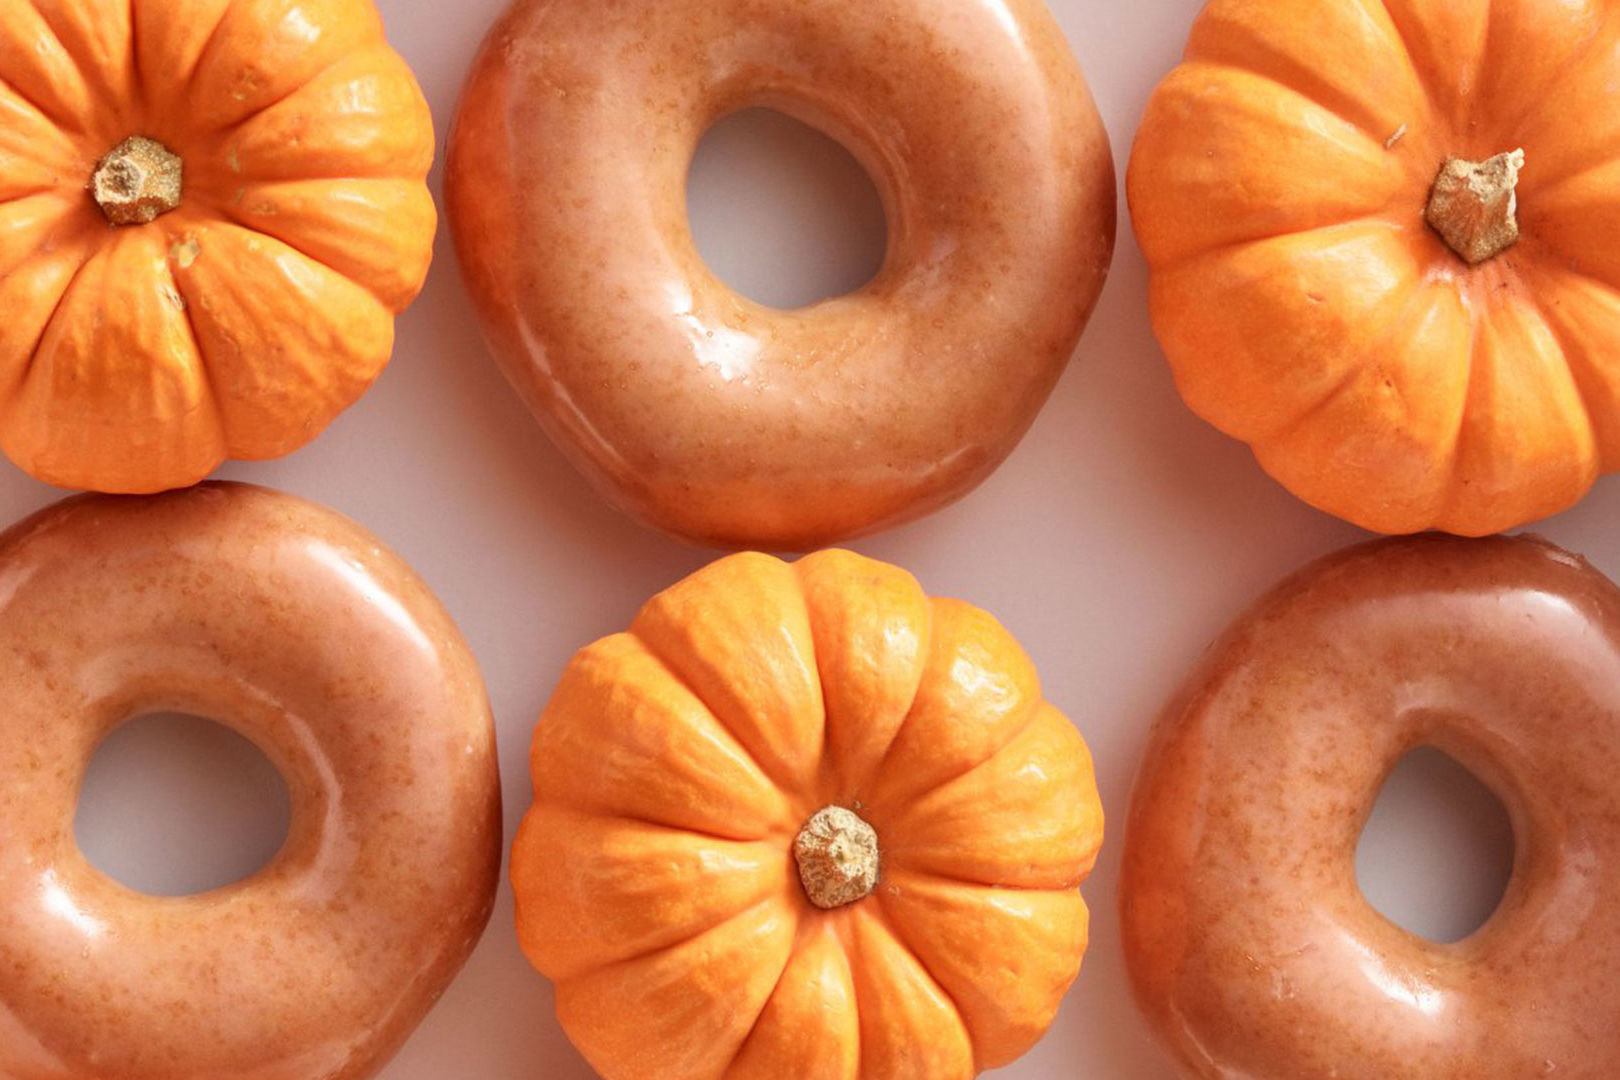 It's Back! Krispy Kreme's Pumpkin Spice Original Glazed Doughnut Returns for Another Week